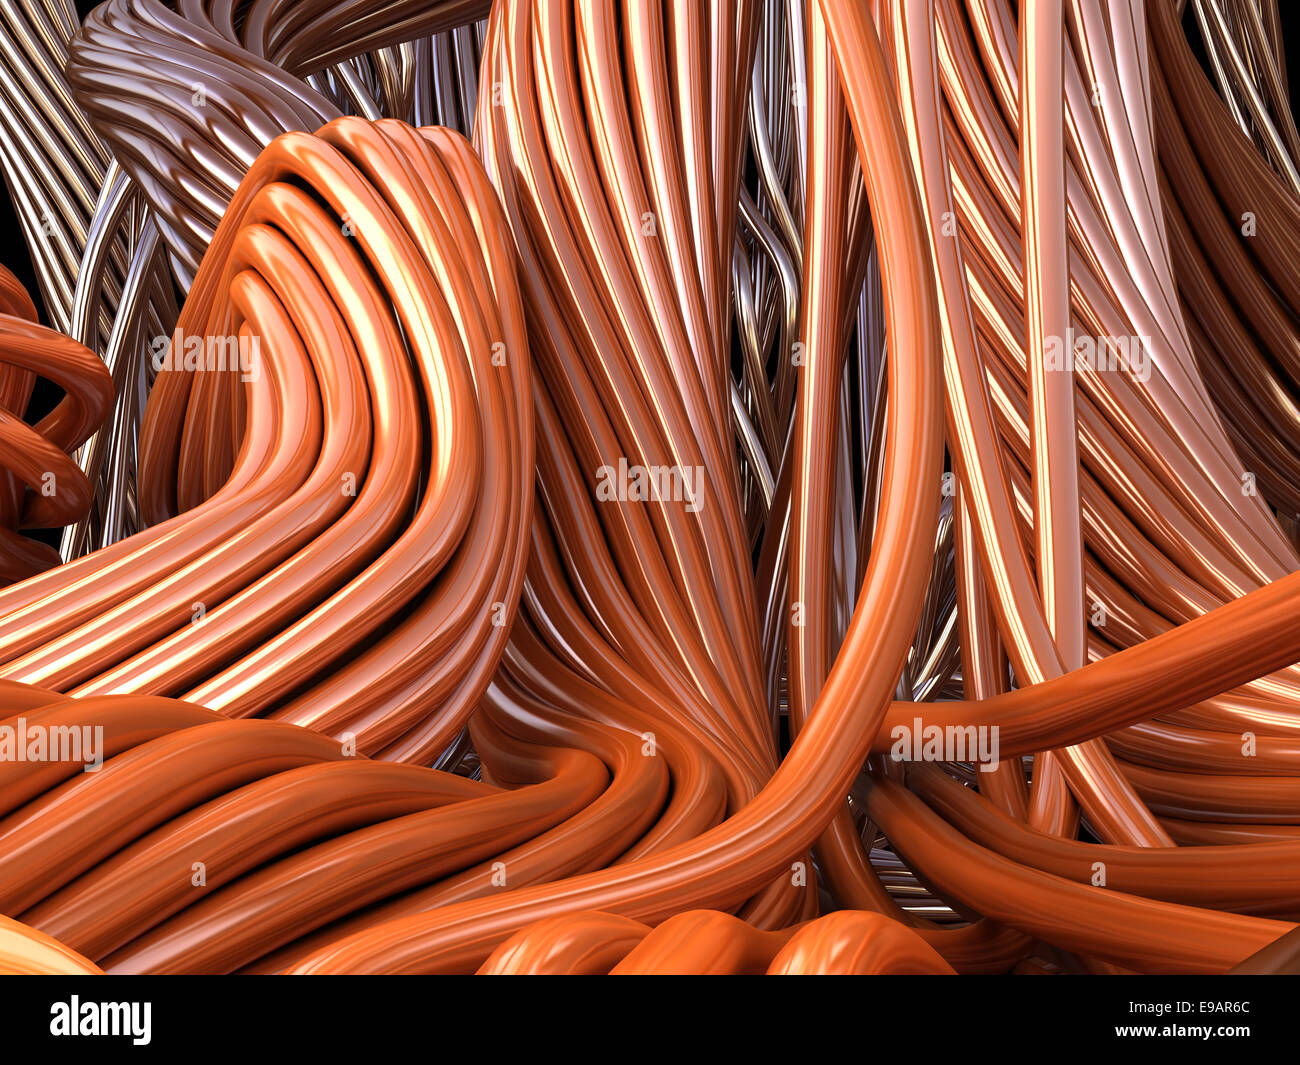 Copper Wires Stock Photos Images Alamy Wiring Cables For Information Future Technology And Industrial 3d Illustration Image